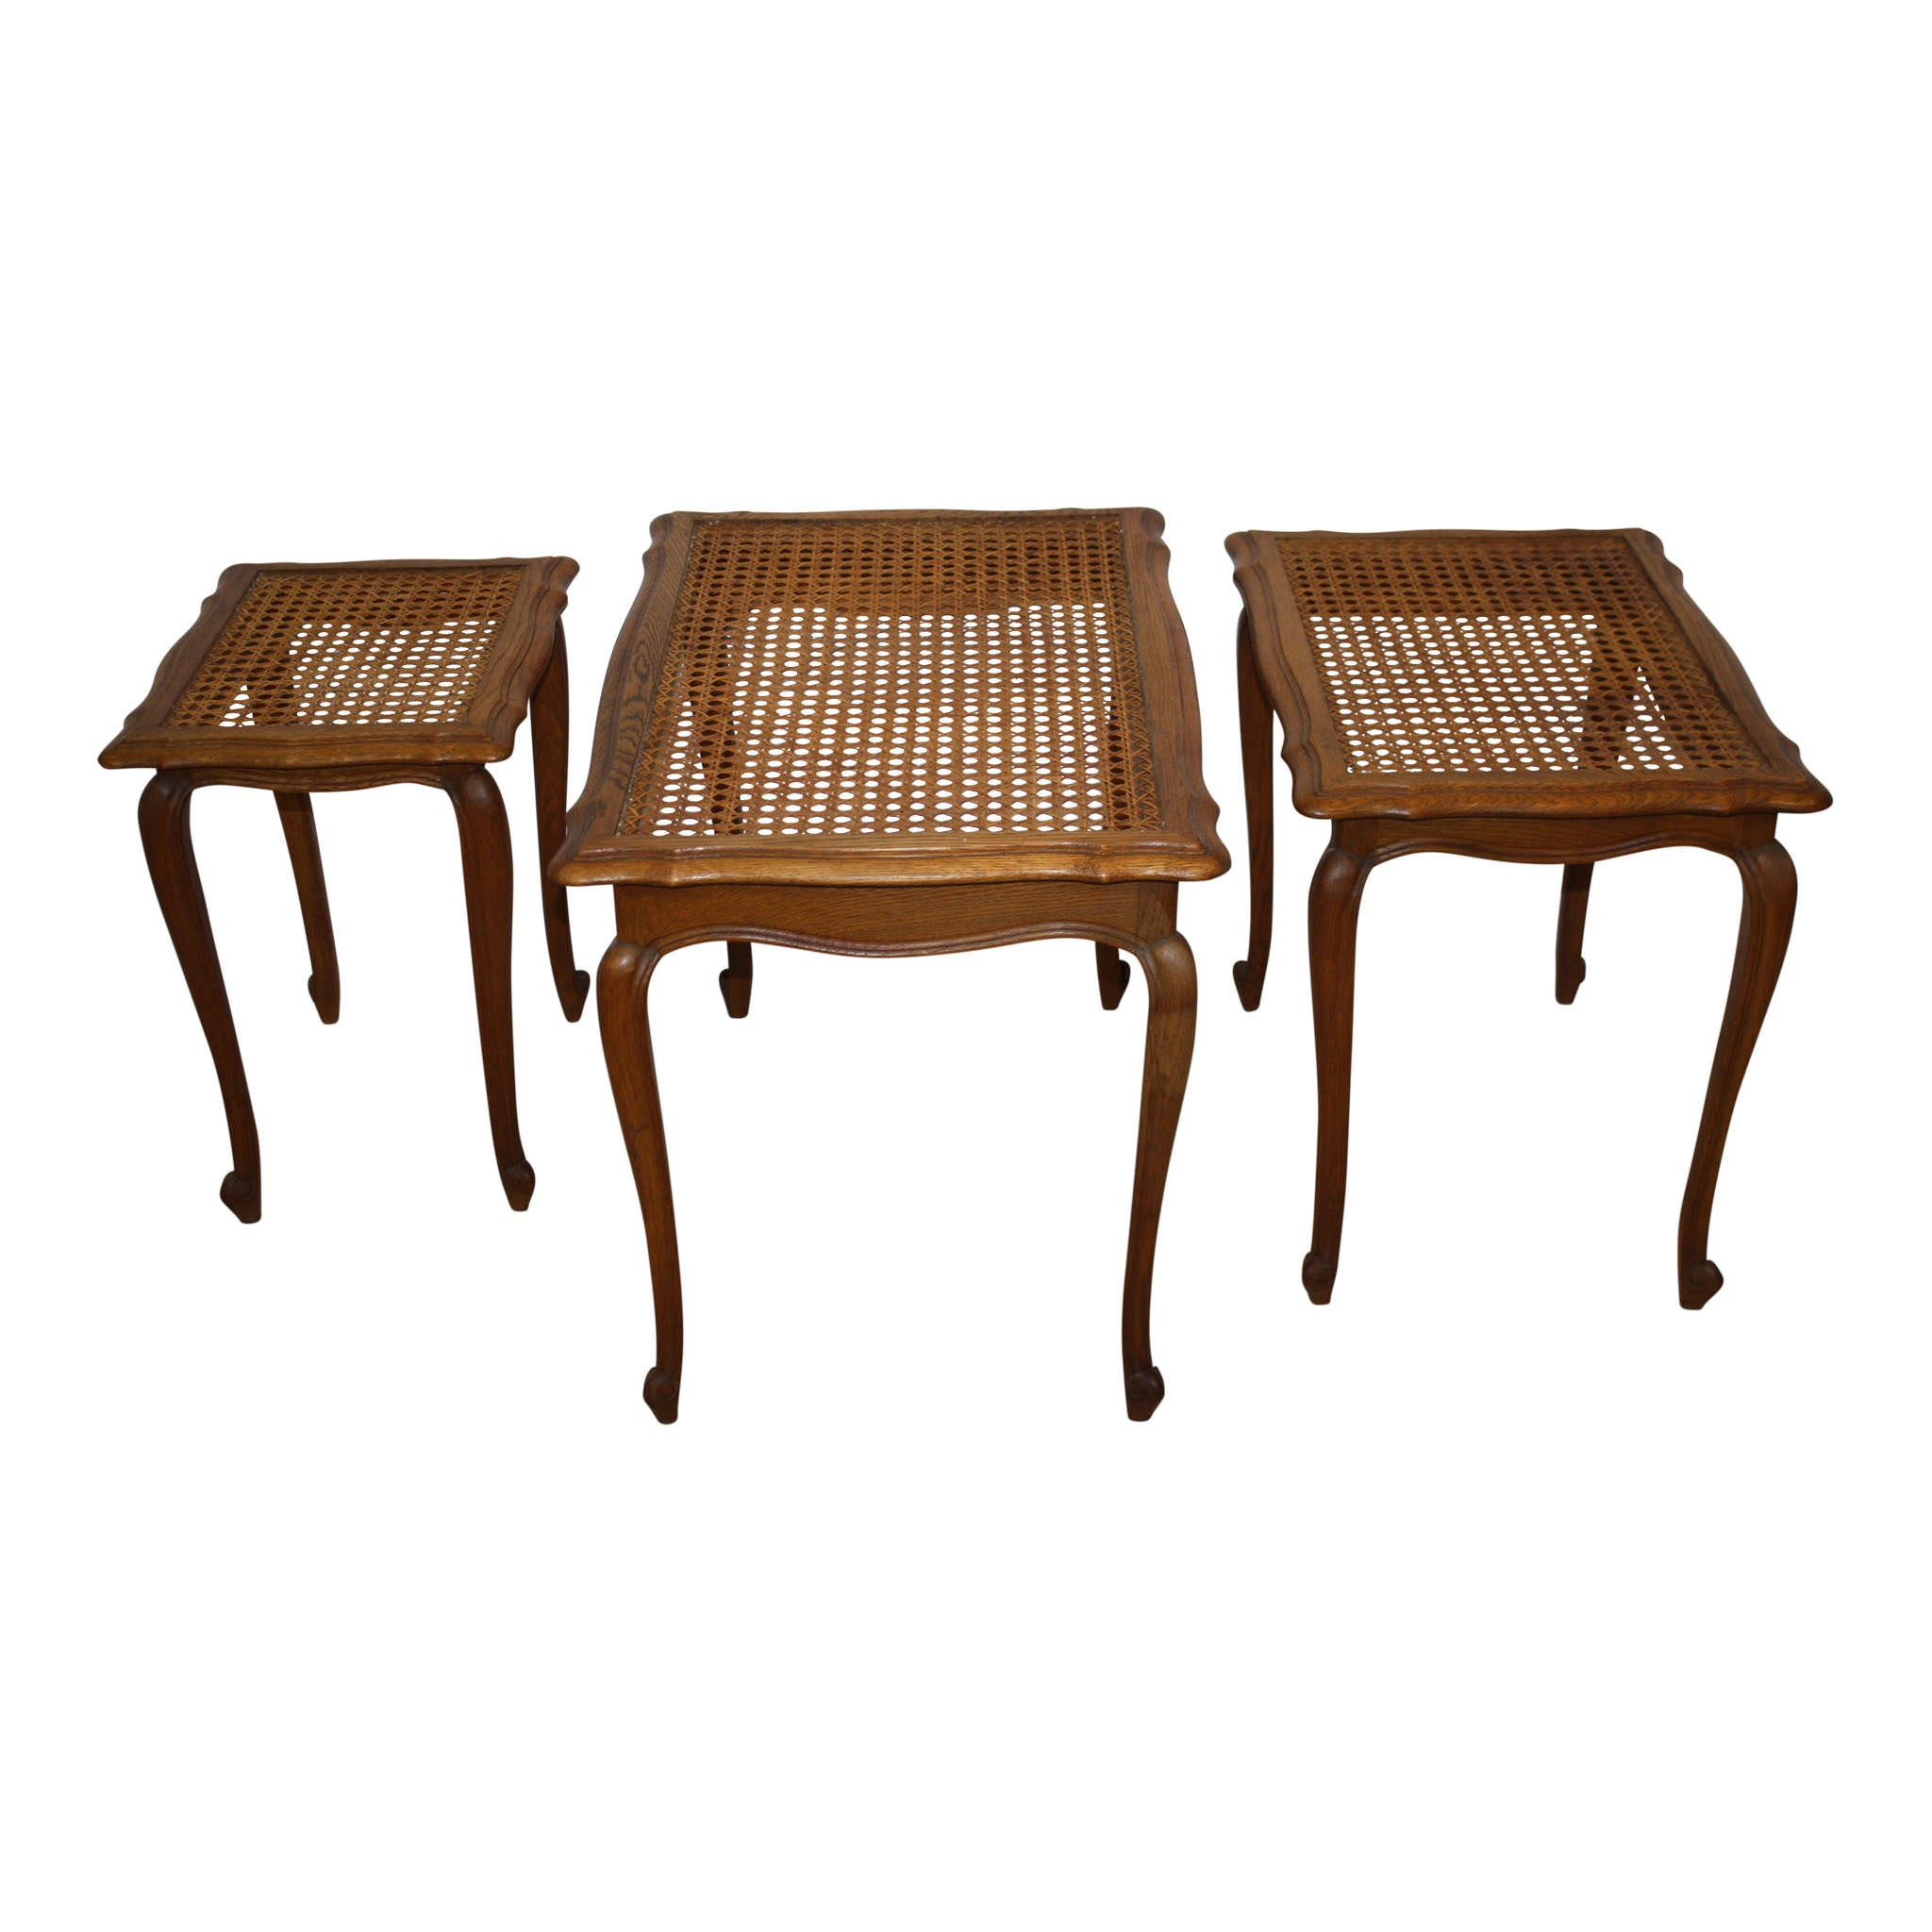 French Oak Nesting Tables with Cane and Glass Tops, Set of Three